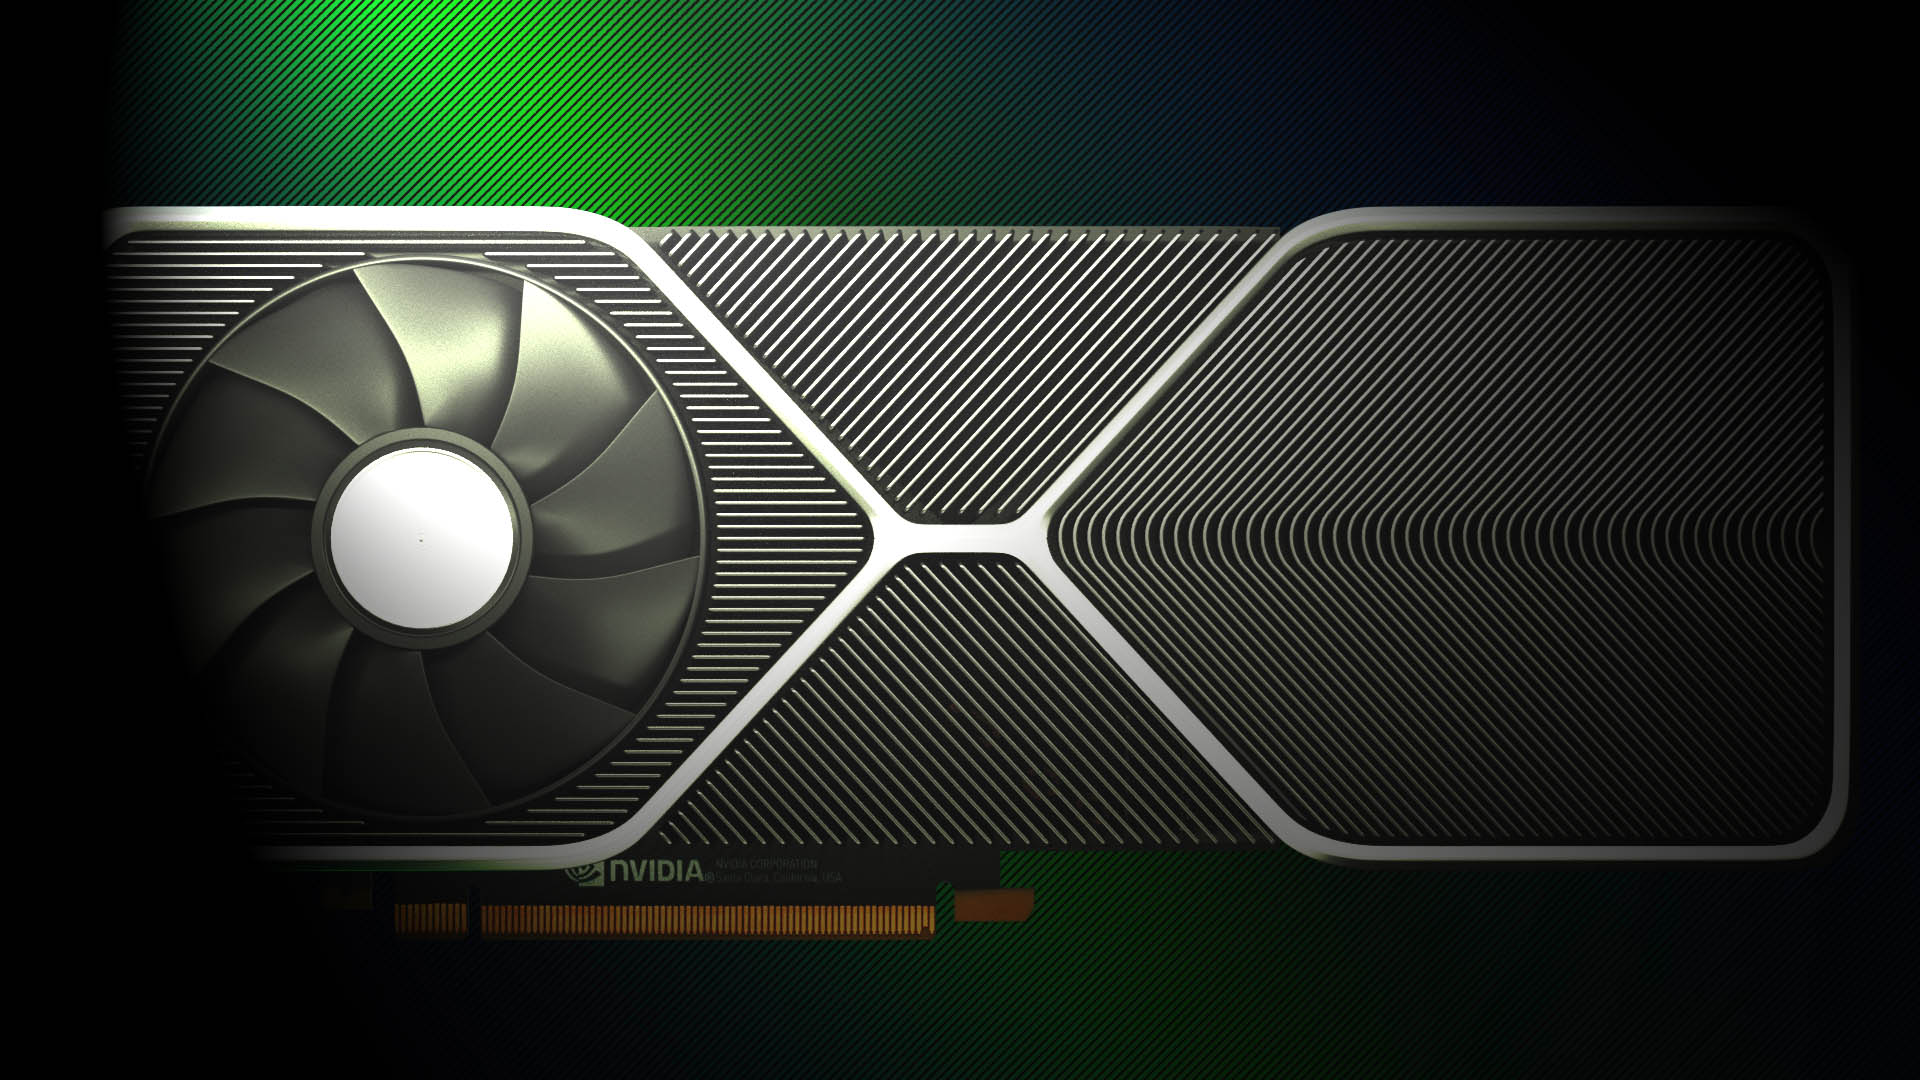 Nvidia Geforce RTX 3060 Ti Ampere RTX 3090 Geforce RTX 3090 Kingpin